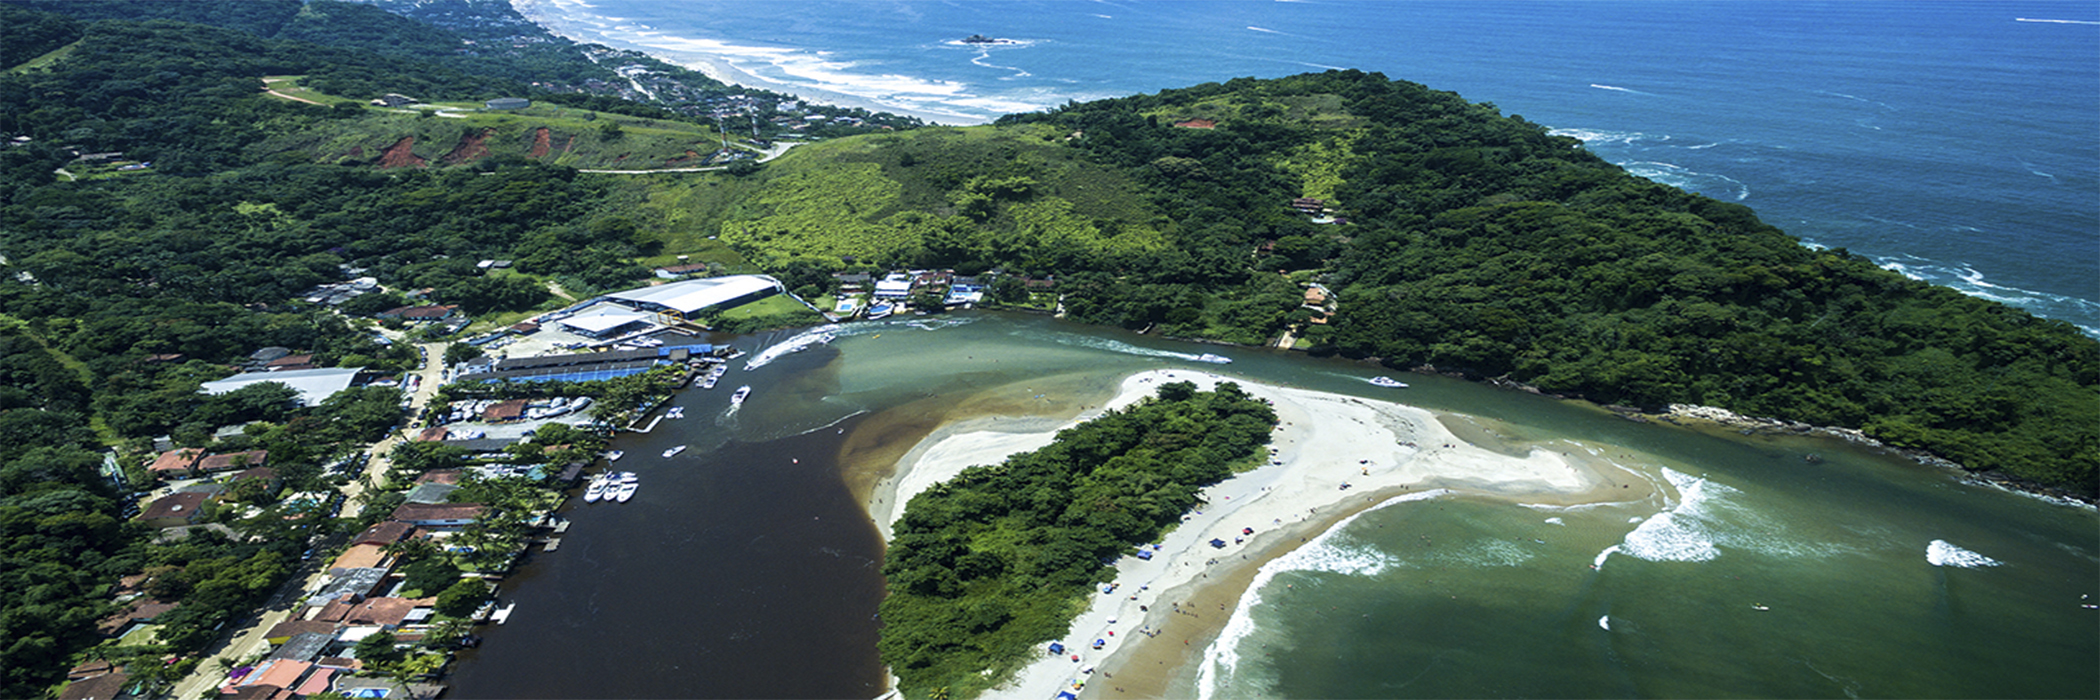 BARRA DO UNA  - ROTEIRO